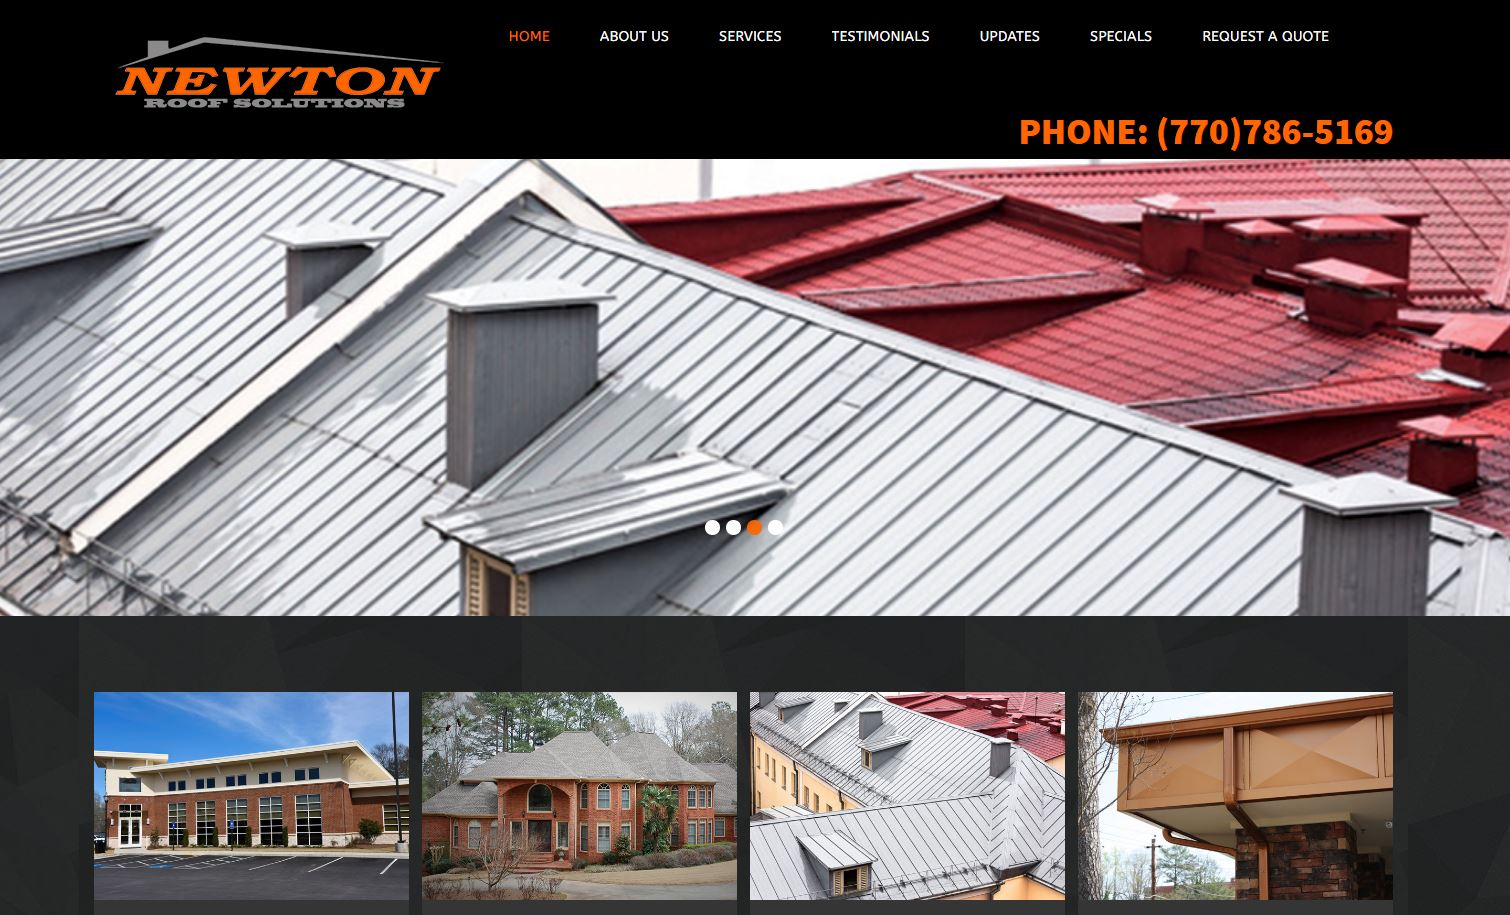 Solia Media Designed Website - Newton Roof